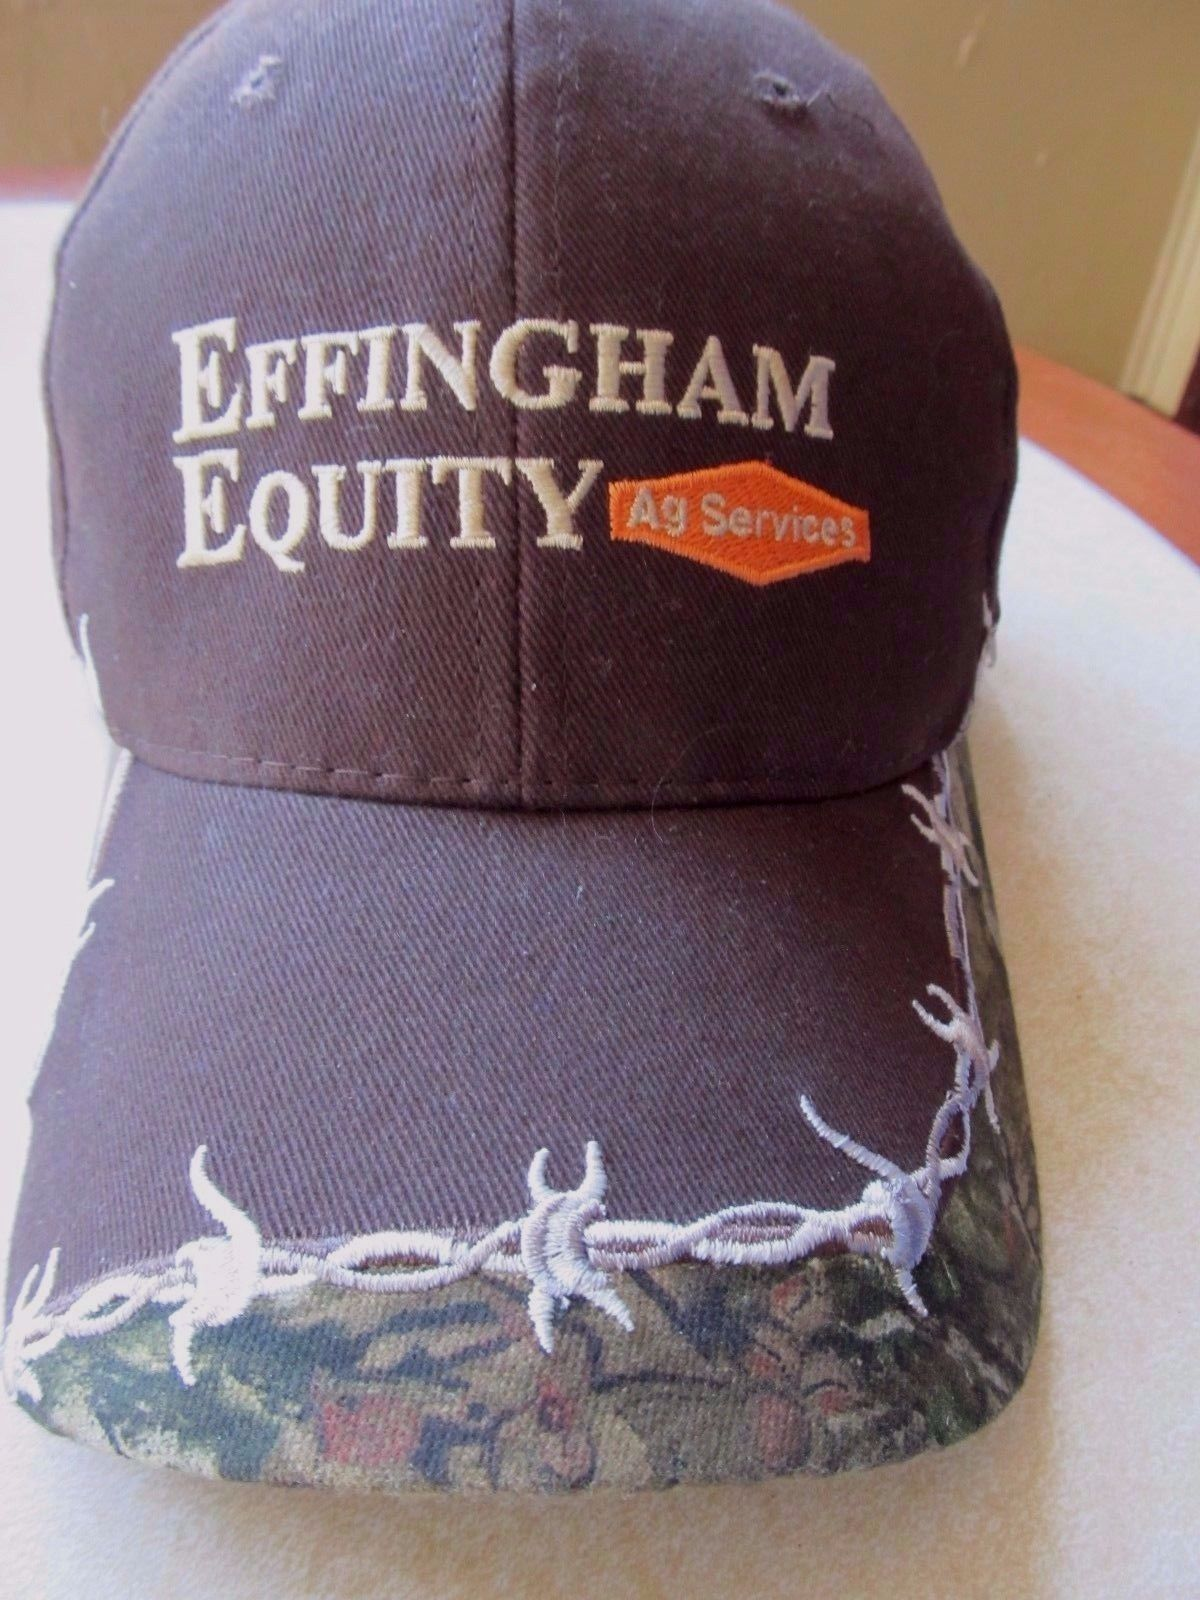 85ea58aee NWT Mossy Oak Effingham Equity Ag Services and 50 similar items